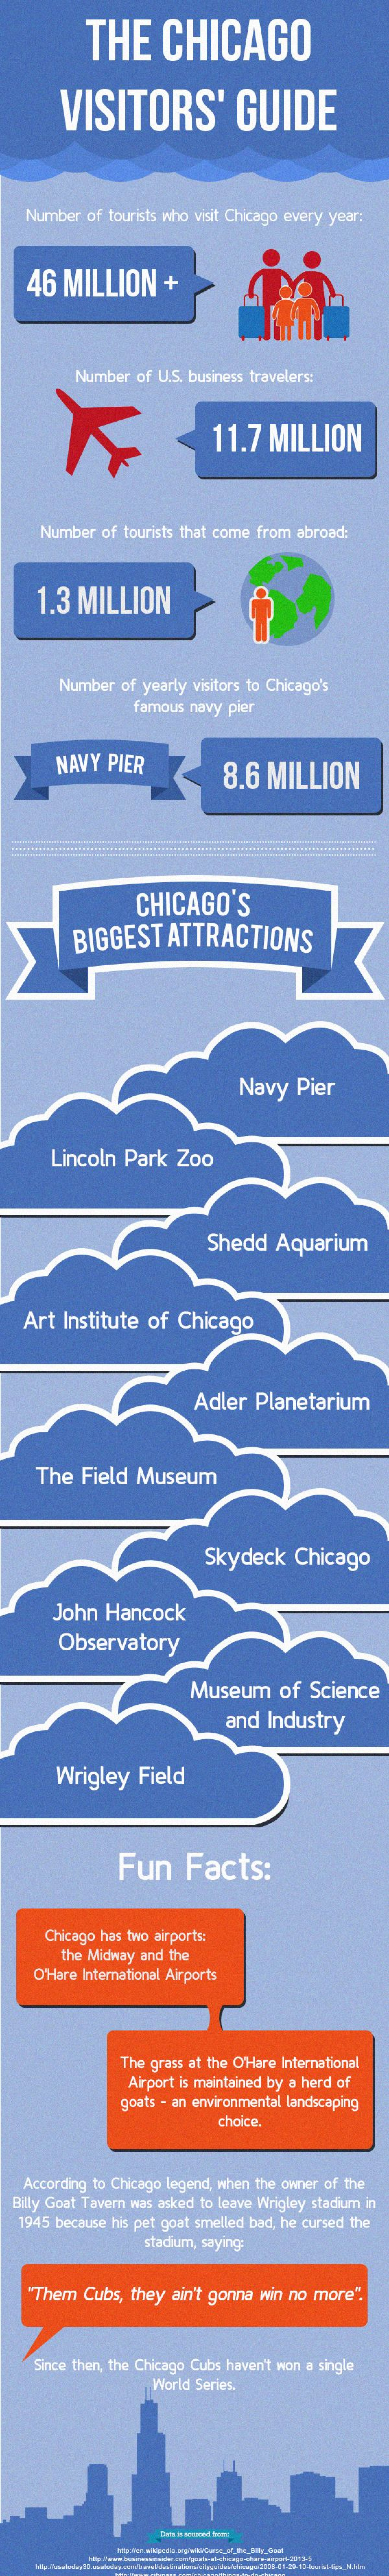 The Chicago Visitors' Guide Infographic